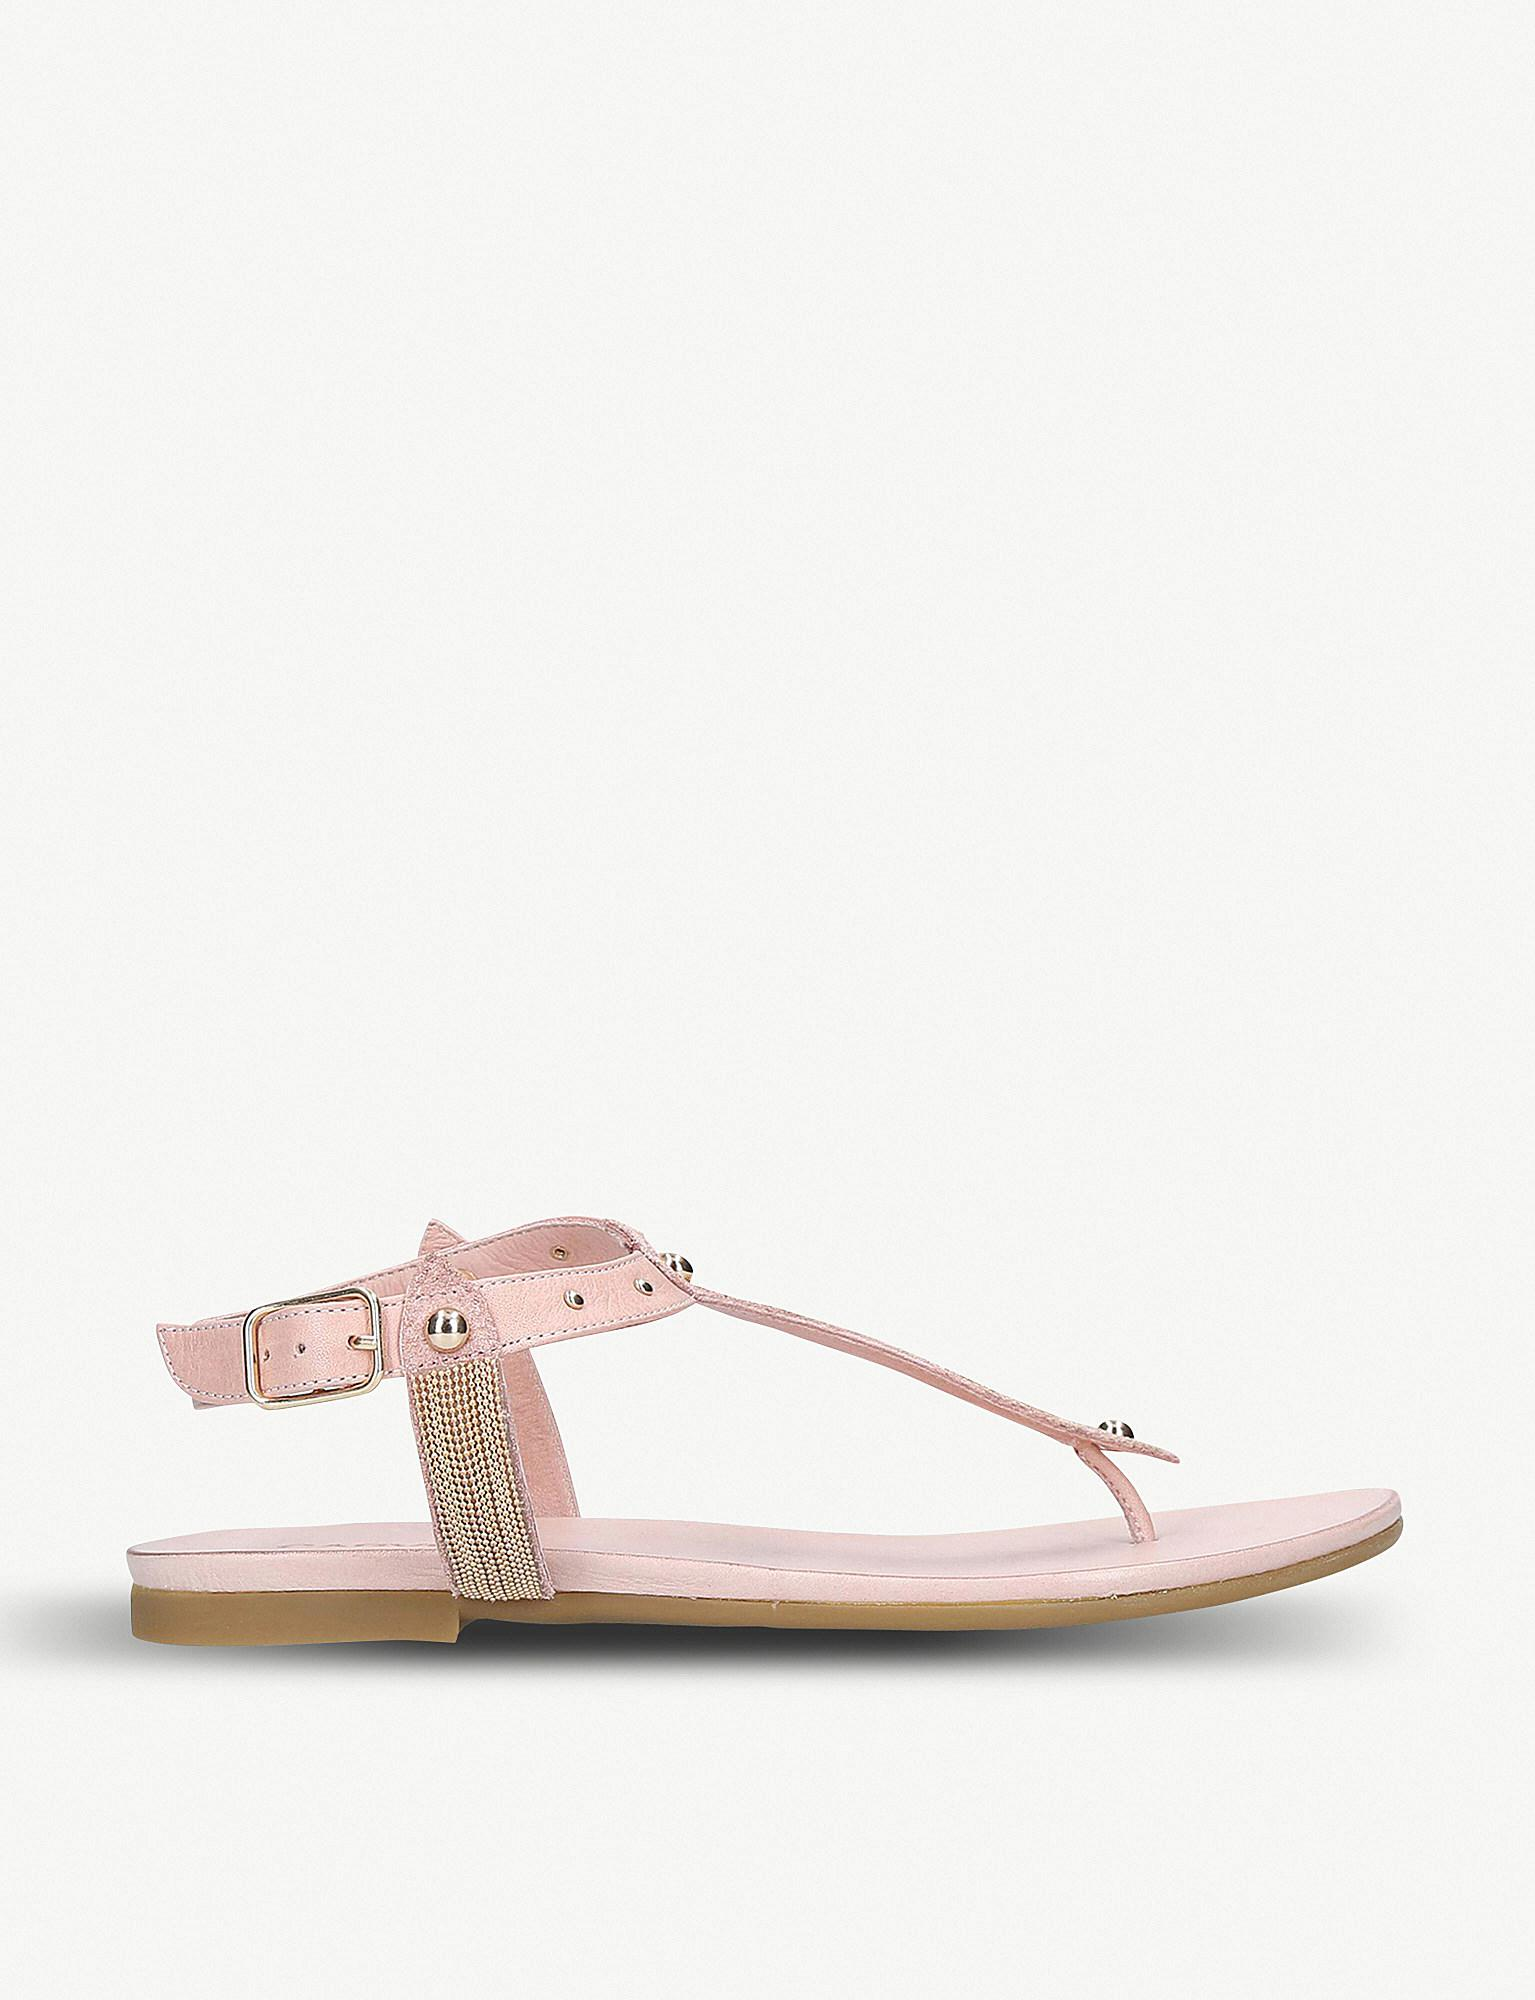 7f0238f49de147 Carvela Kurt Geiger. Women s Koncert Leather Sandals